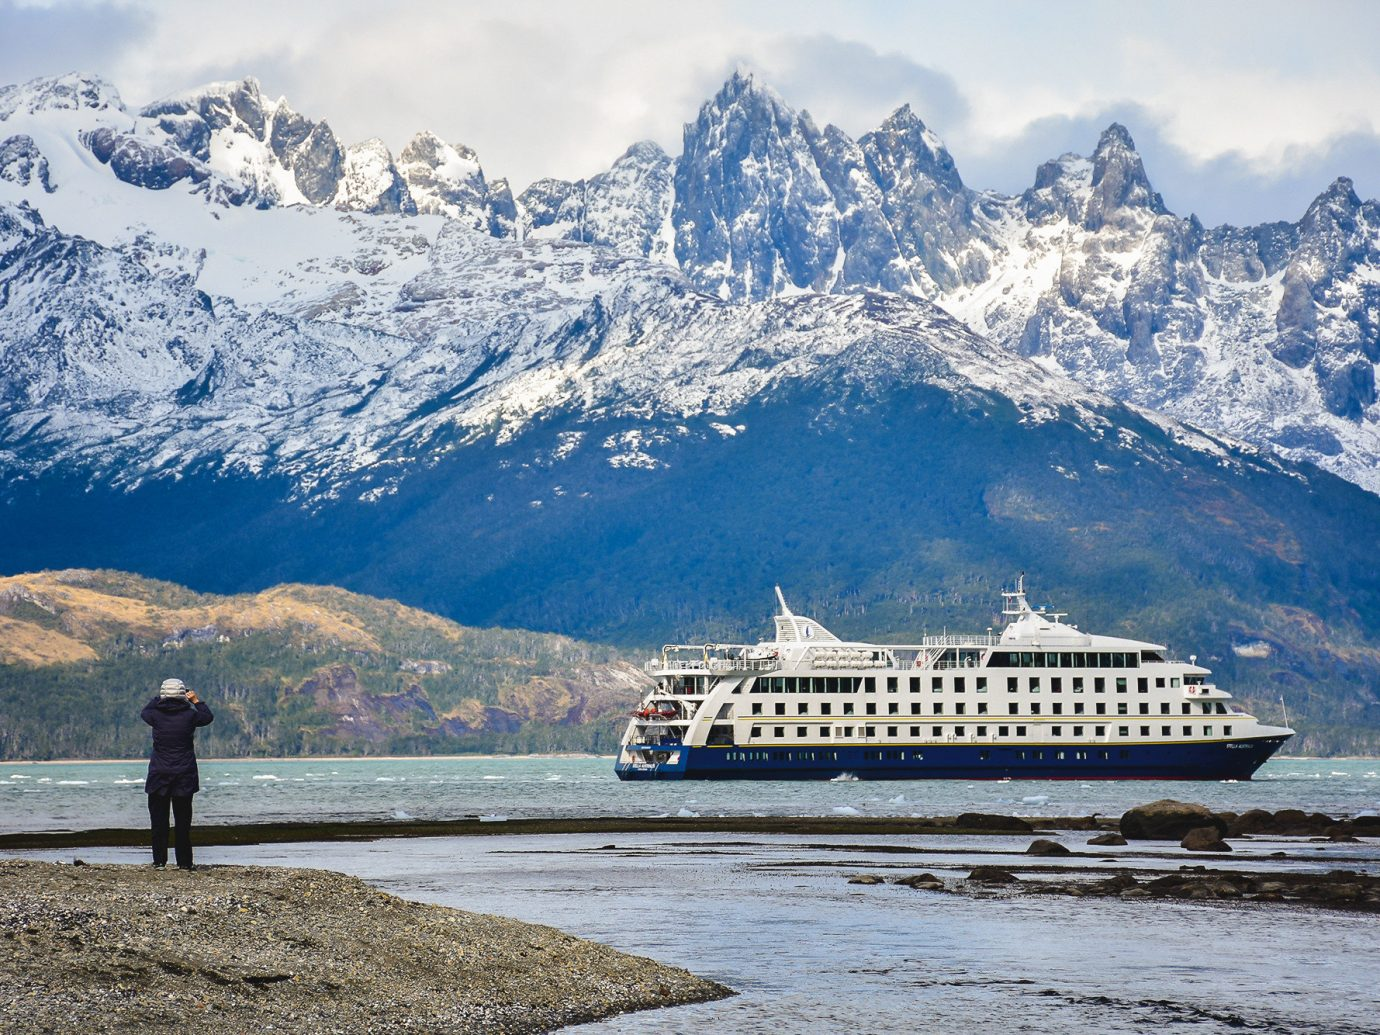 Cruise Travel Luxury Travel Trip Ideas sky mountain outdoor snow mountainous landforms Nature mountain range water cloud Lake alps glacial landform mount scenery passenger ship Winter tourism cruise ship fjord landscape reflection fell glacier tree ship national park ice